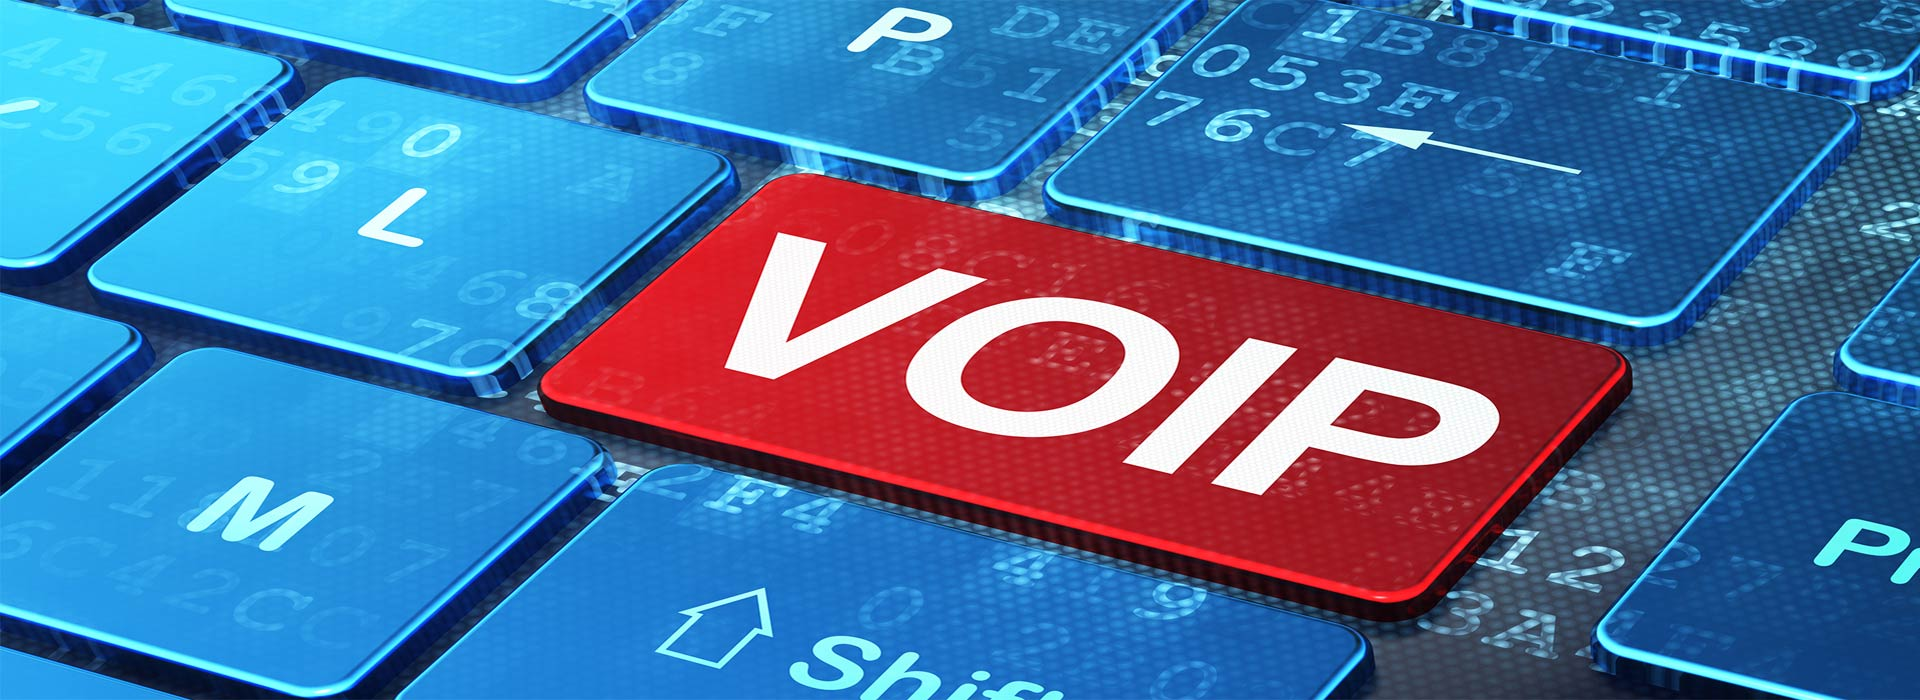 <small></small> خدمات VOIP